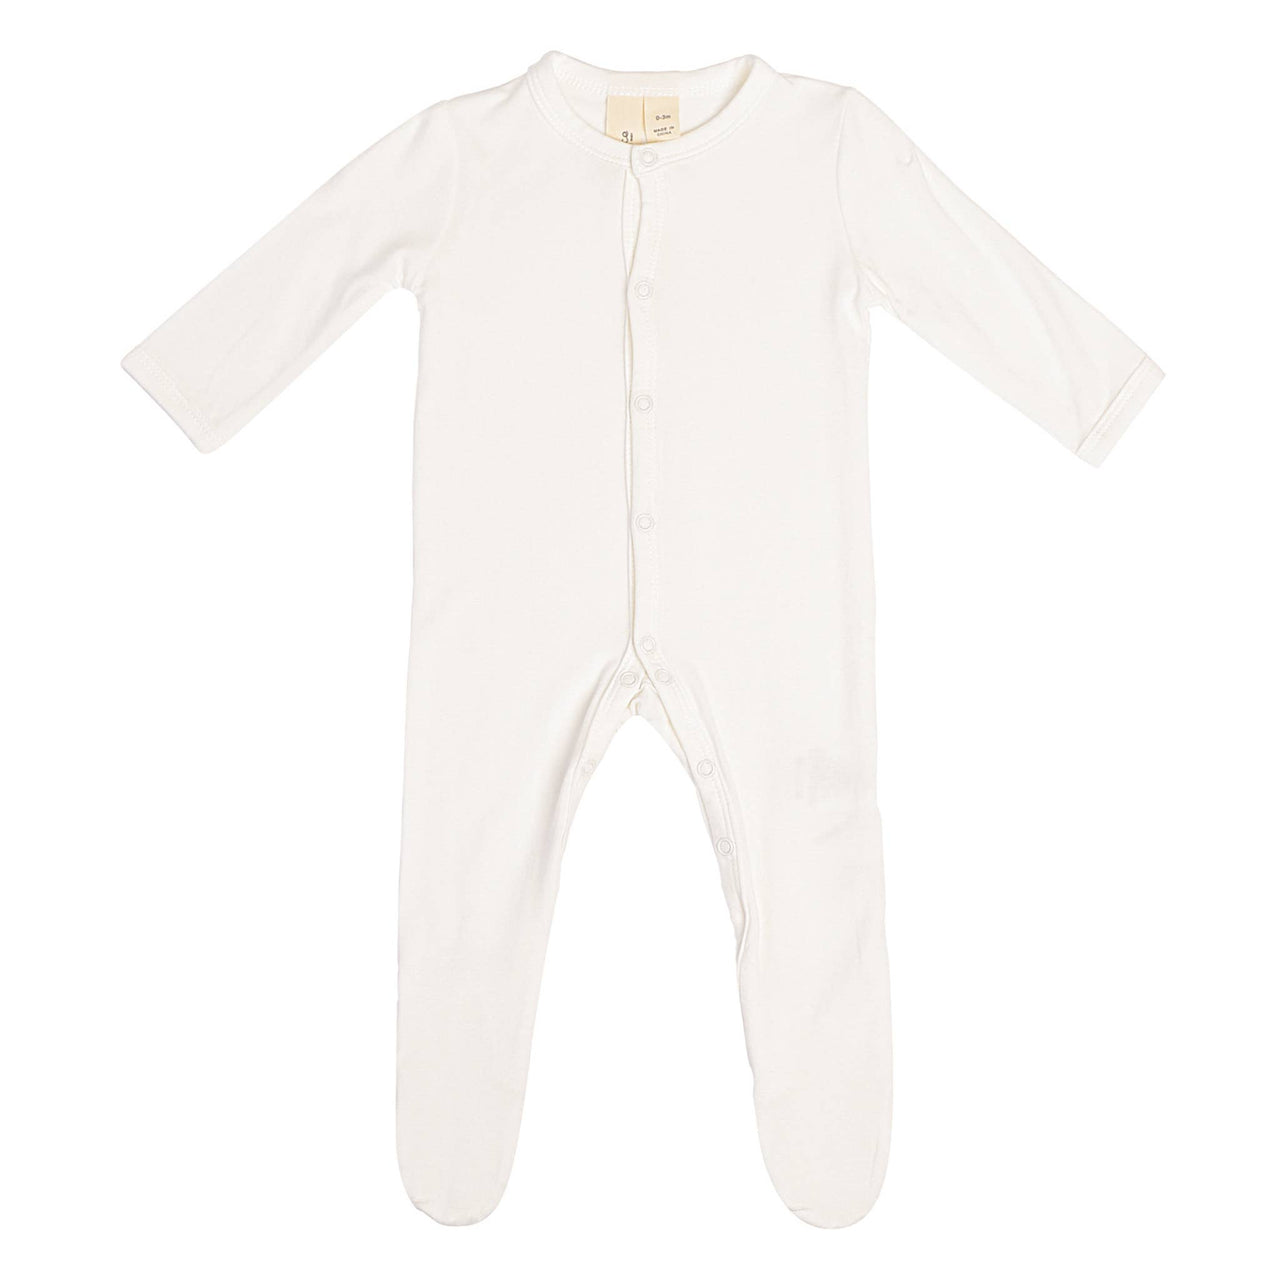 Kyte Baby Solid Footie Pajamas in Cloud